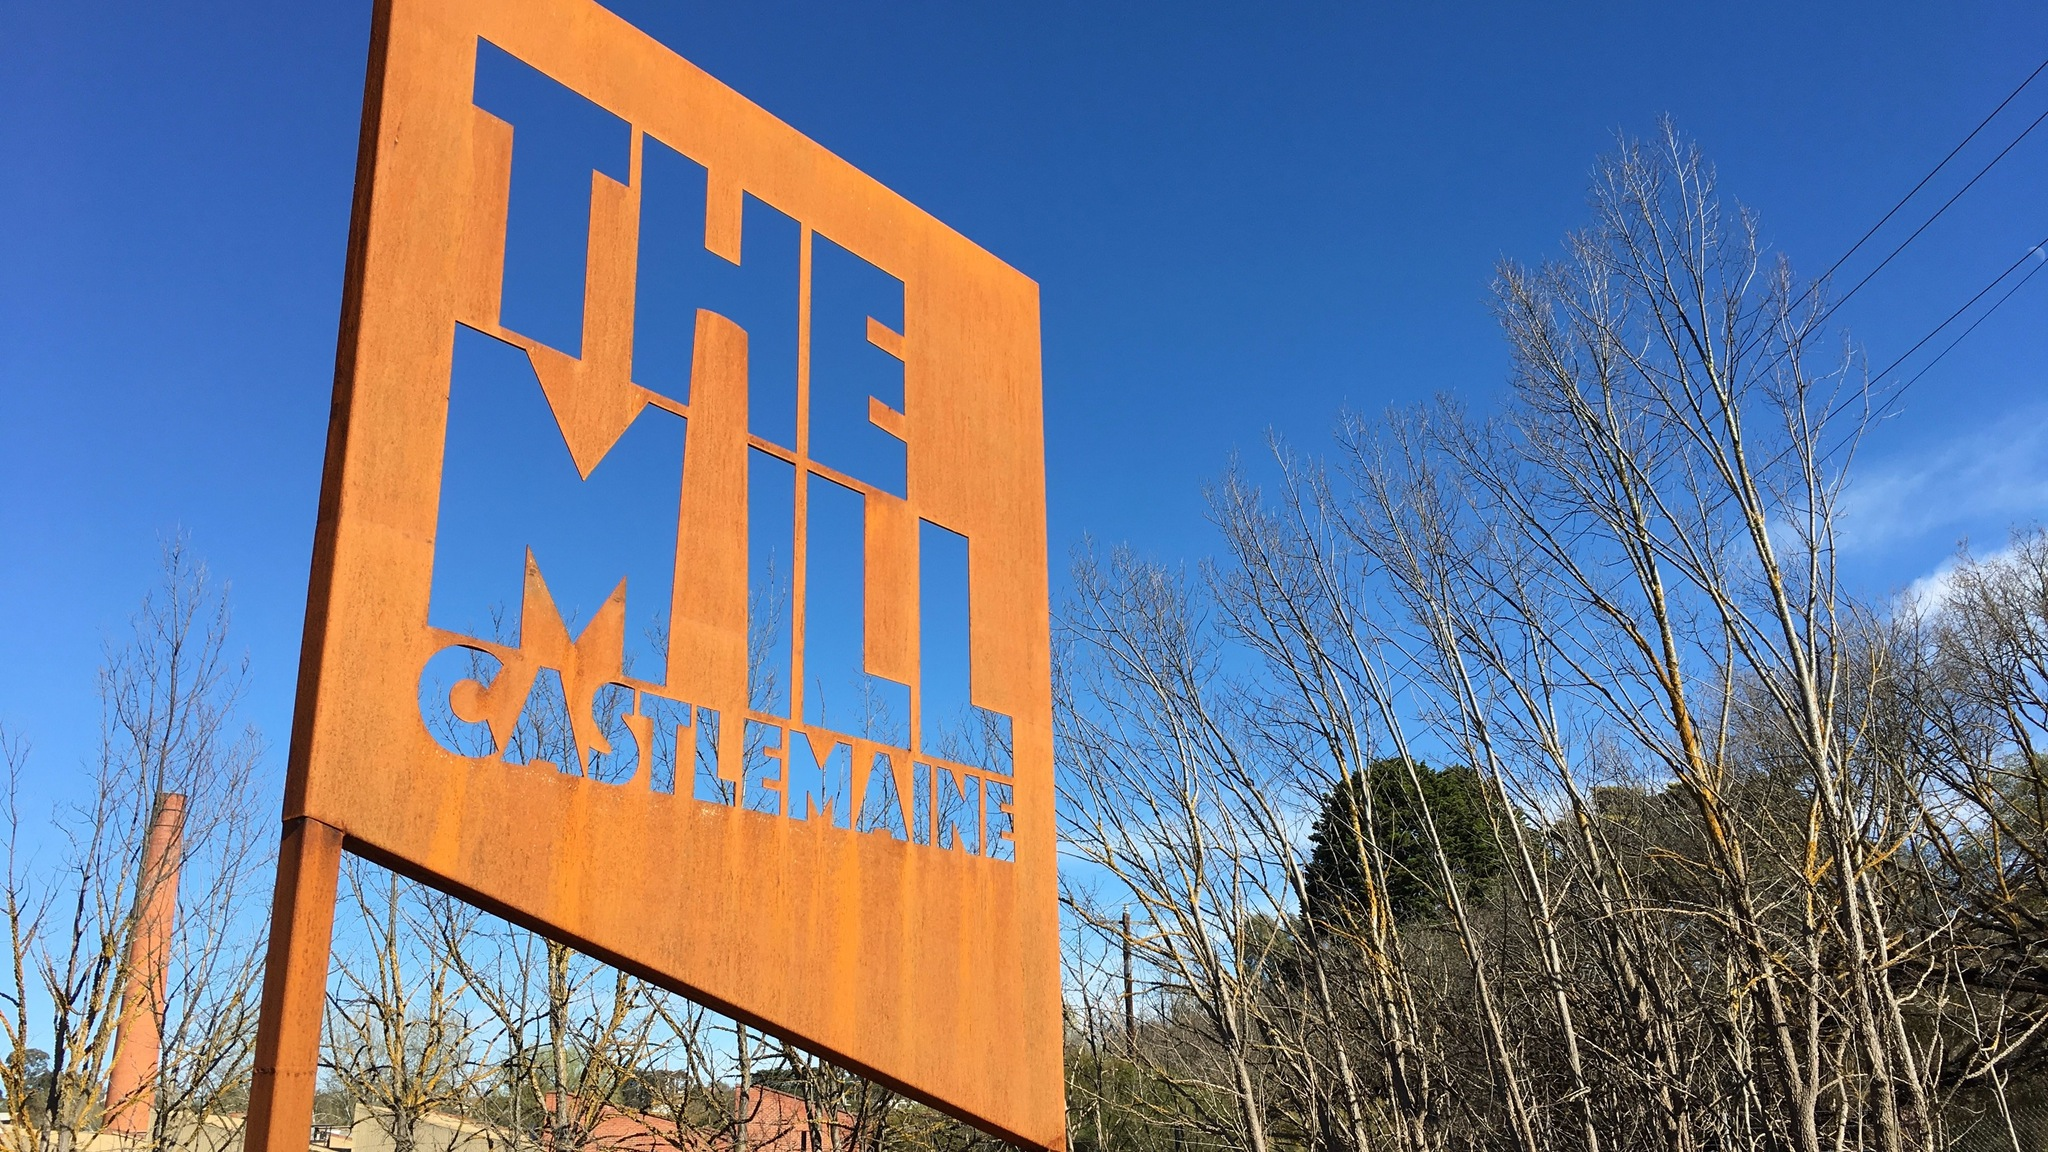 The Mill Castlemaine celebrating history and heritage